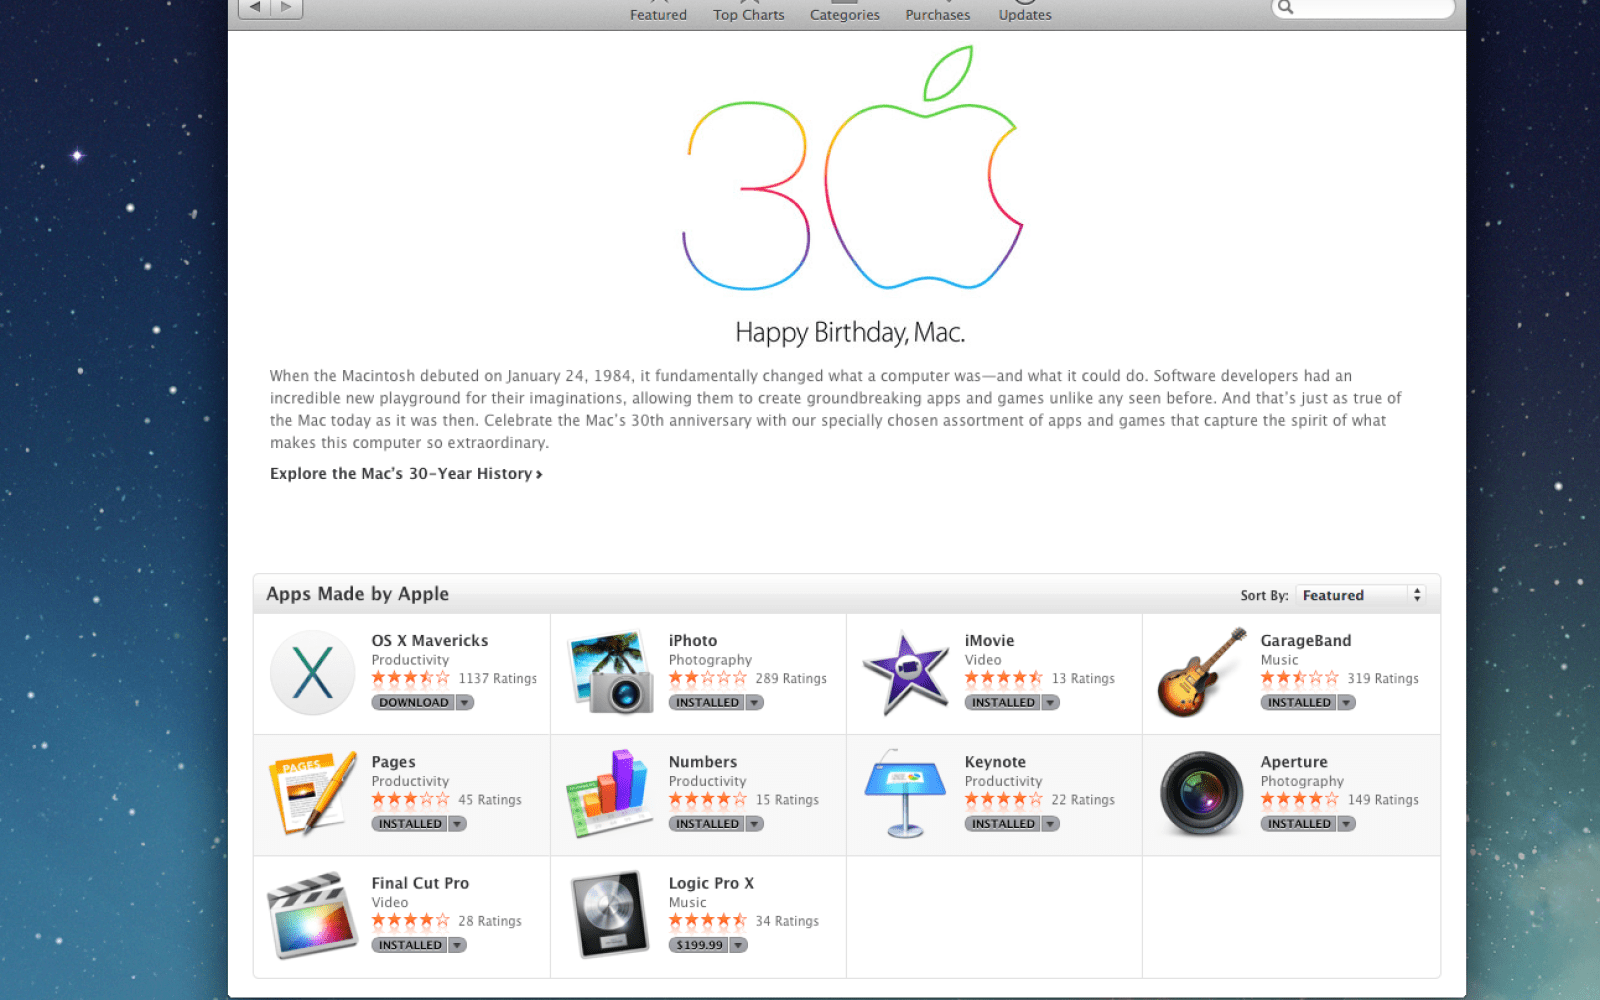 Apple says 'Happy Birthday, Mac' with special Mac App Store section